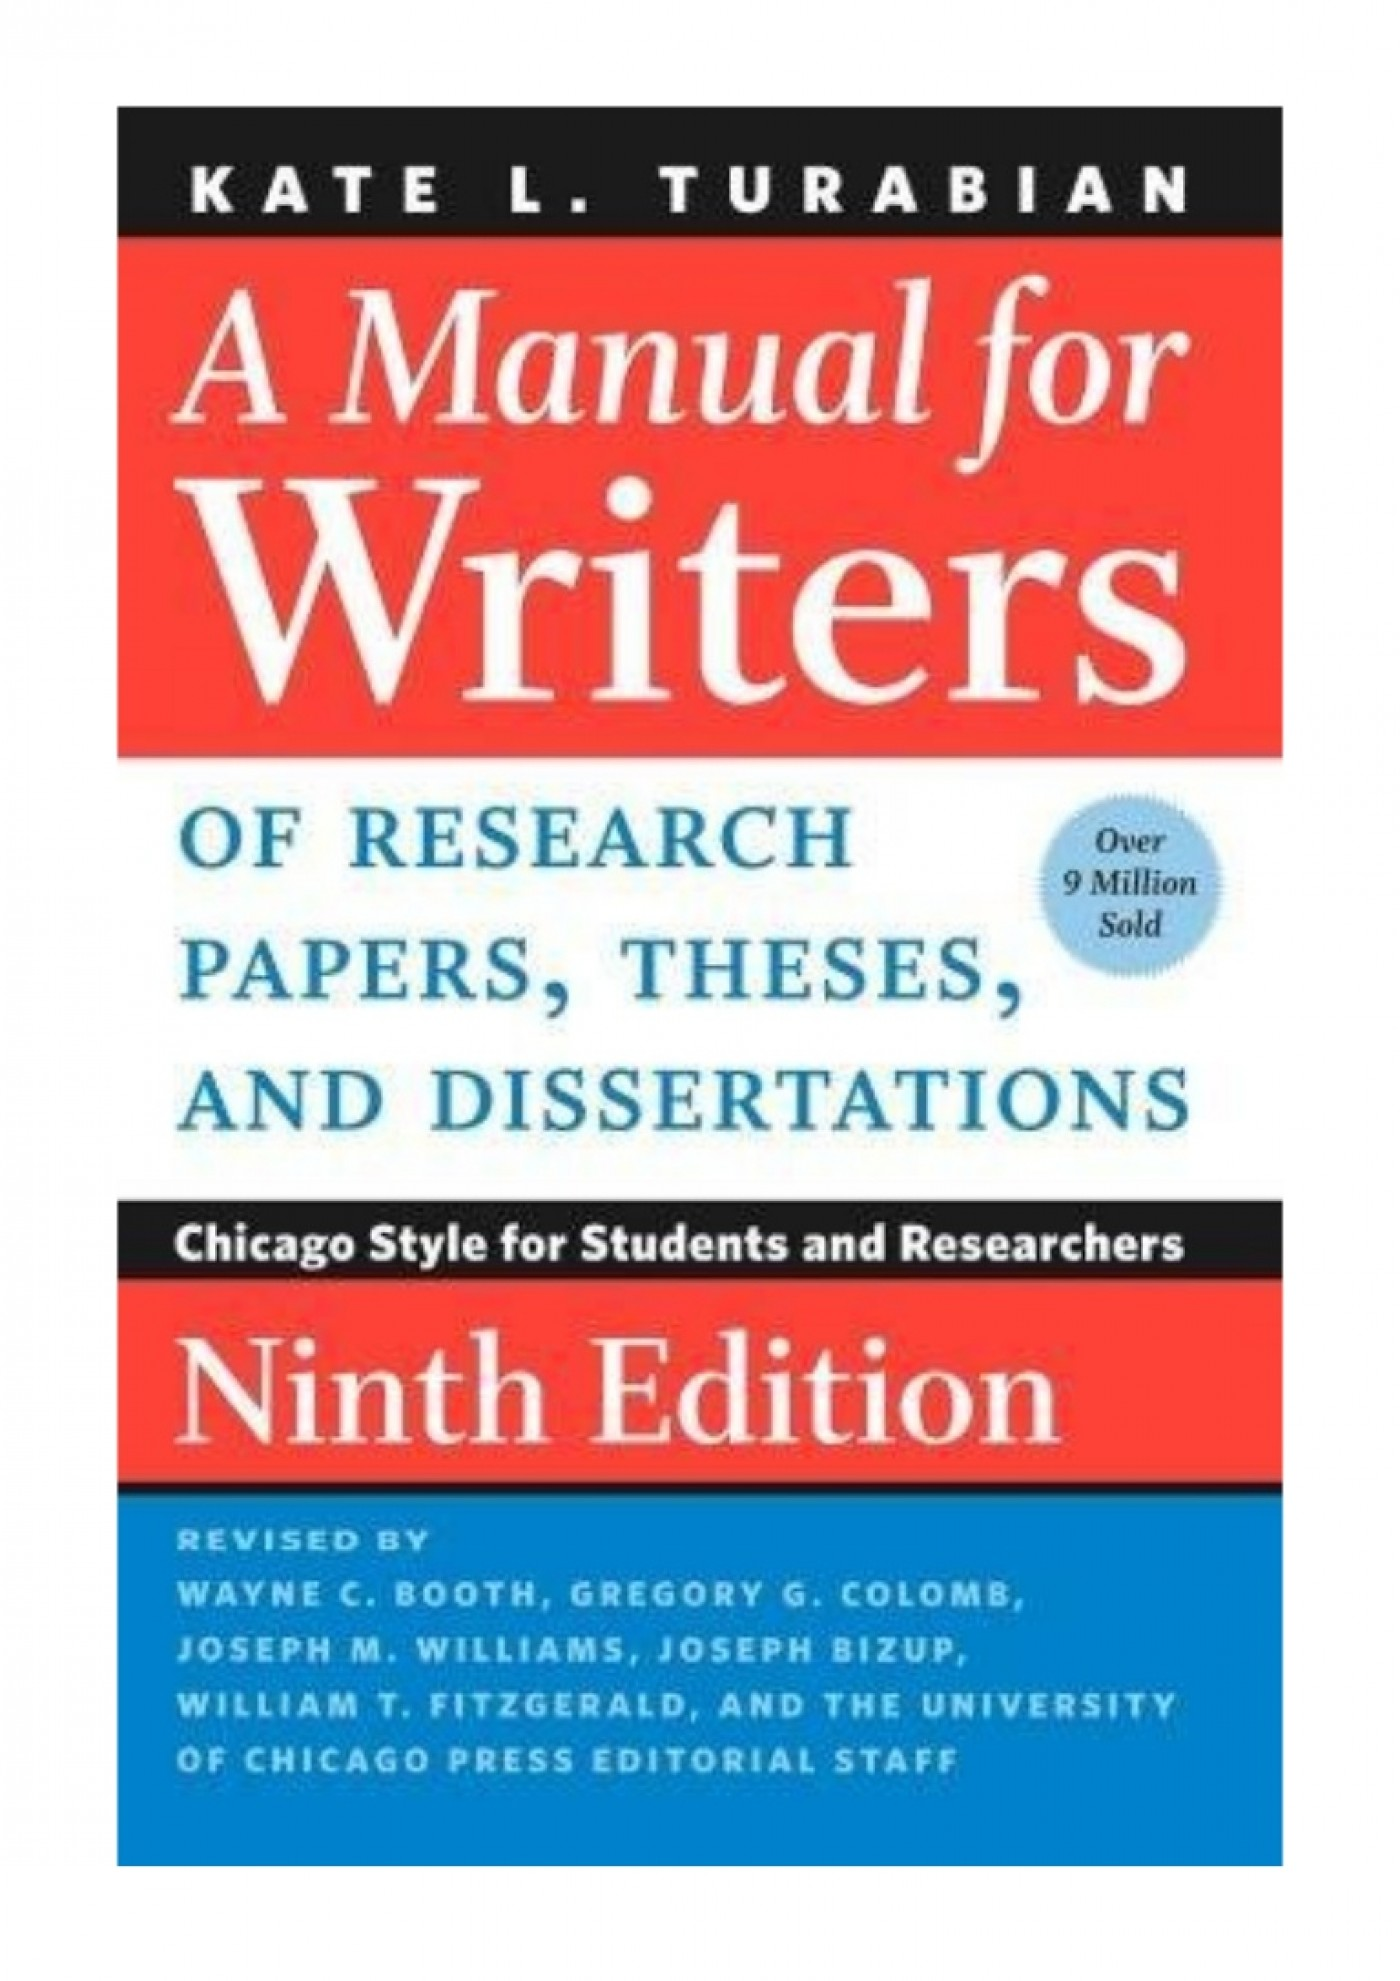 007 022643057x Amanualforwritersofresearchpapersthesesanddissertationsnintheditionbykatel Thumbnail Research Paper Manual For Writers Of Papers Theses And Sensational A Dissertations Ed. 8 8th Edition Ninth Pdf 1400